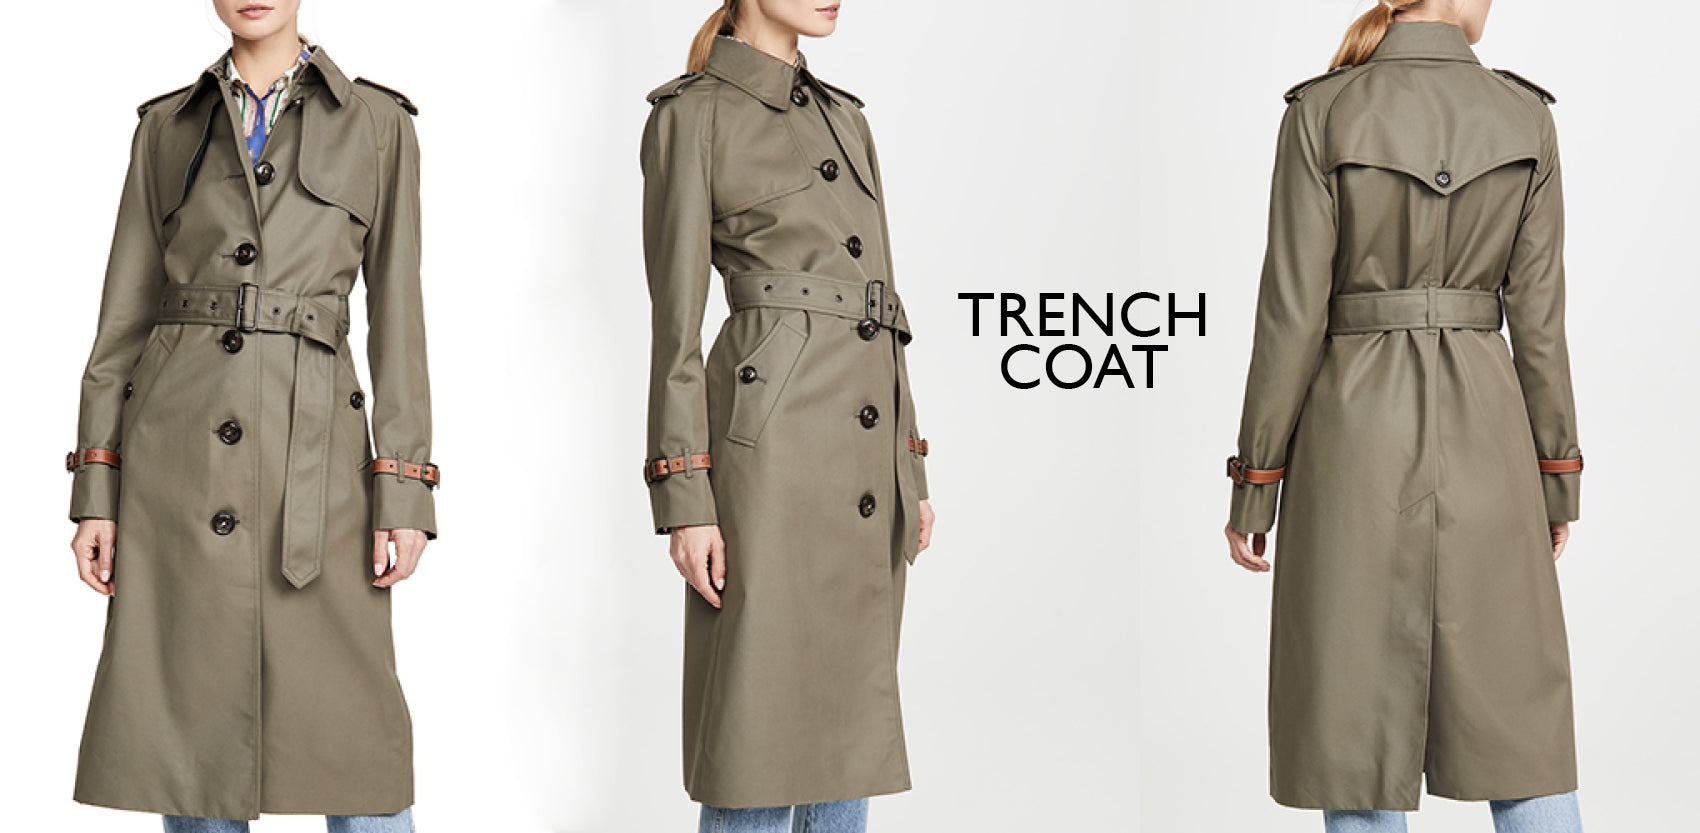 Coat Envy - Owning The Coat, The One Everyone Wishes They Had